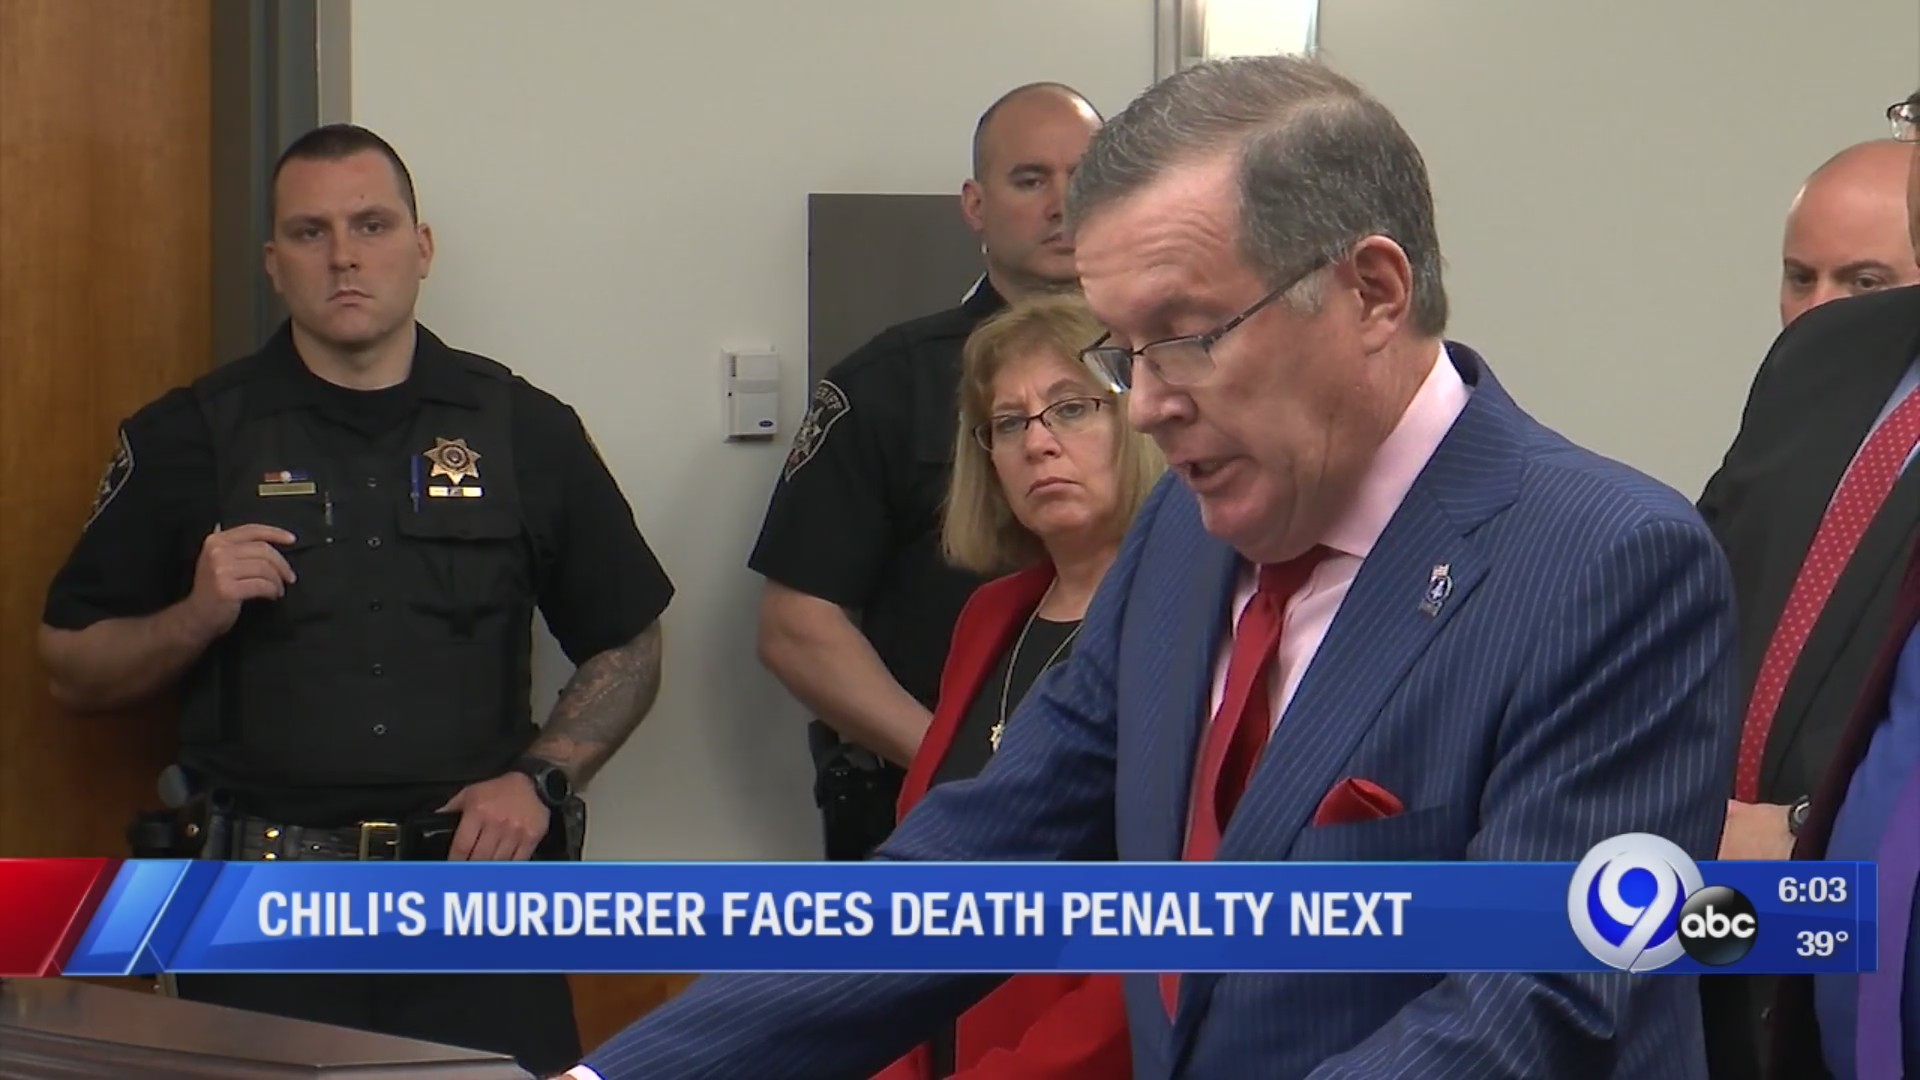 Chili_s_Murderer_Faces_Death_Penalty_Nex_0_20190415222852